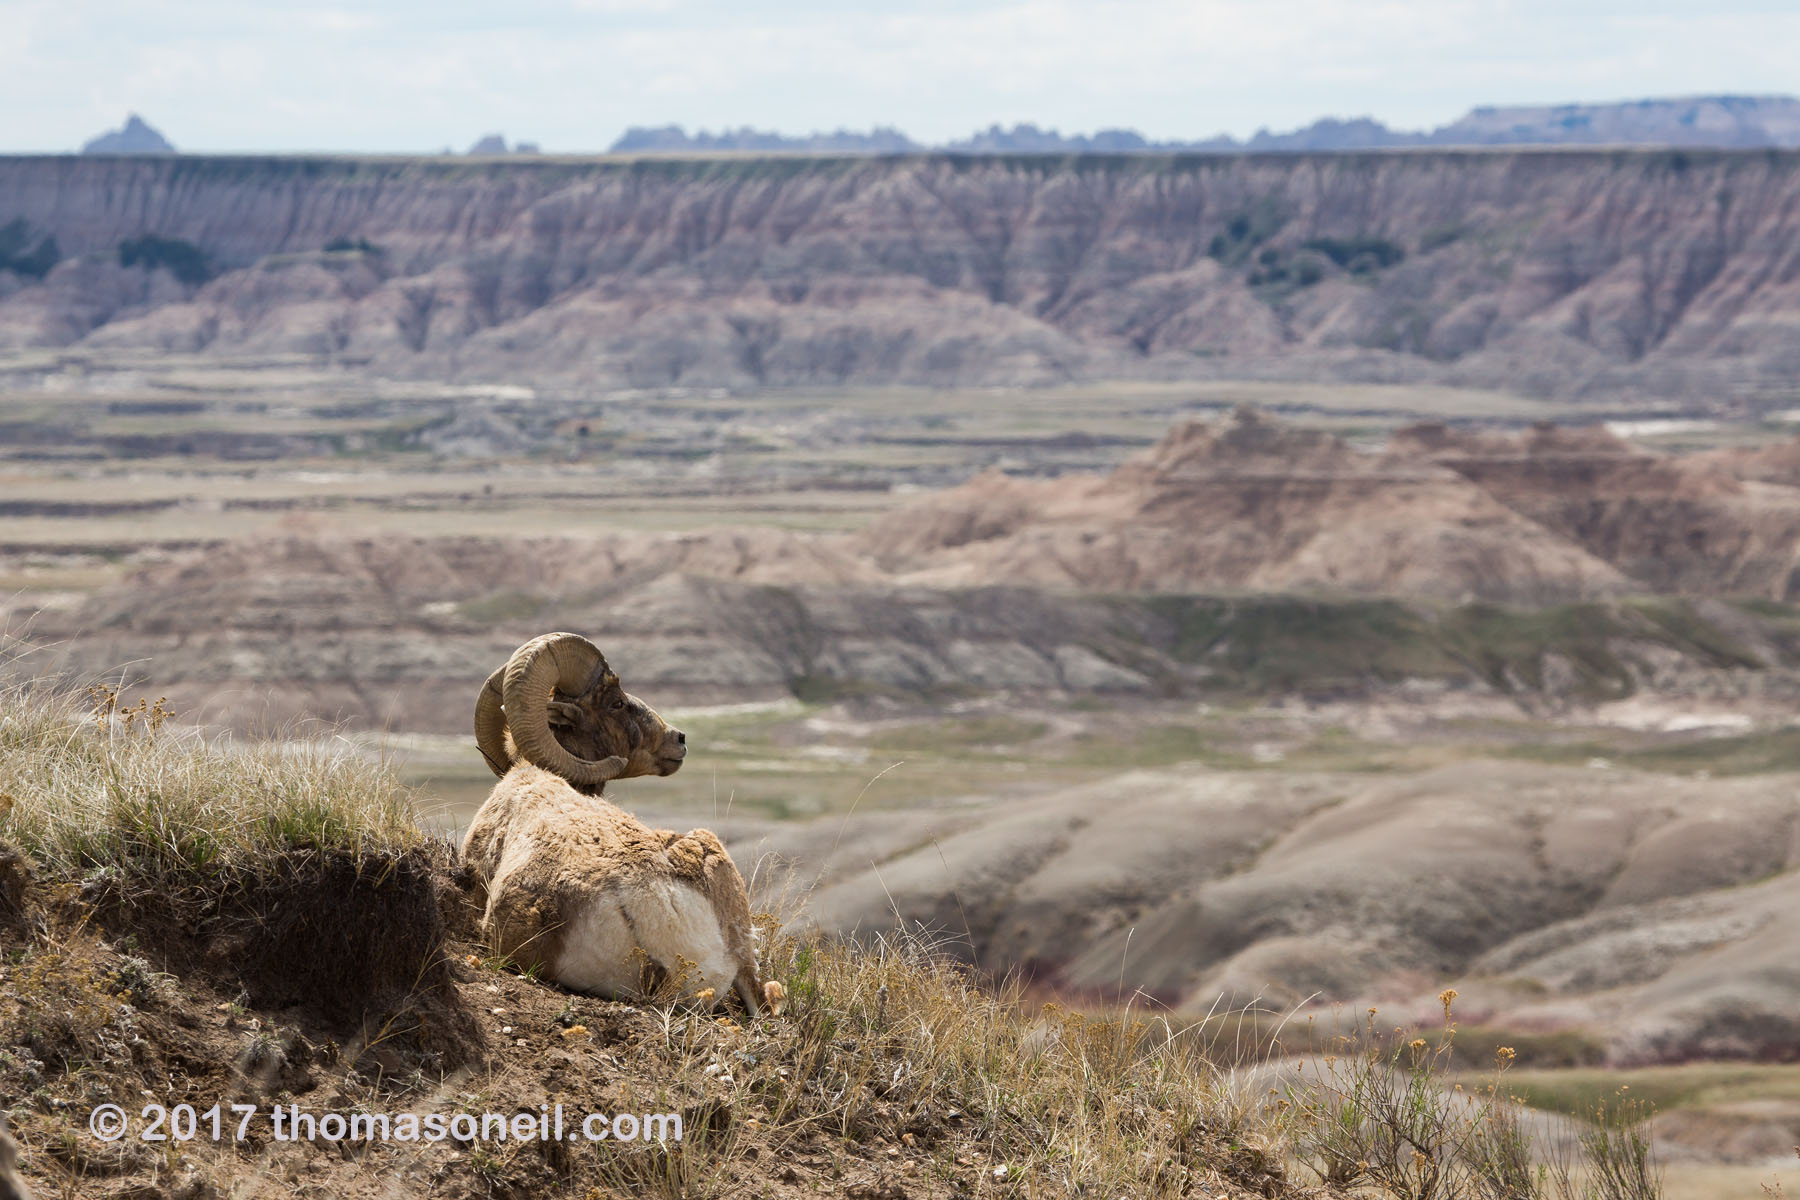 Bighorn relaxing and enjoying the view, Badlands National Park, April 2017.  Click for next photo.